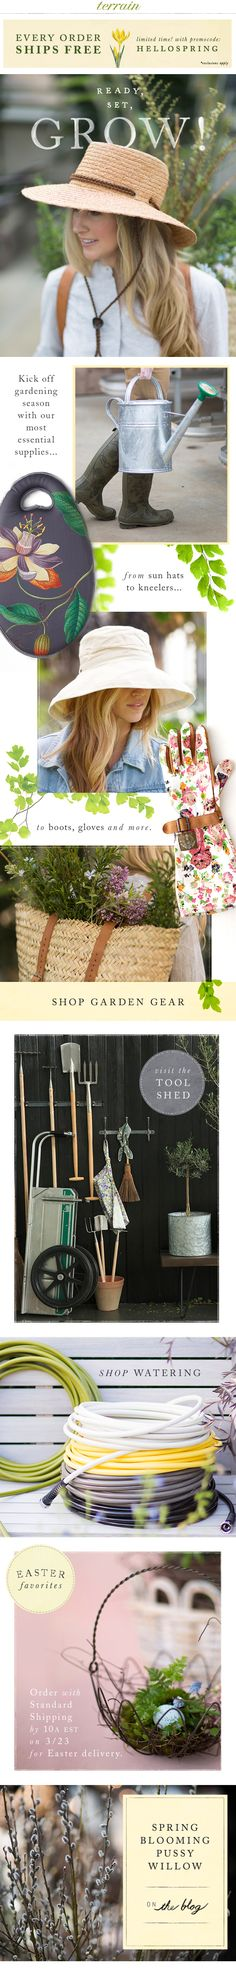 #Gardening #supplies are here! March 20